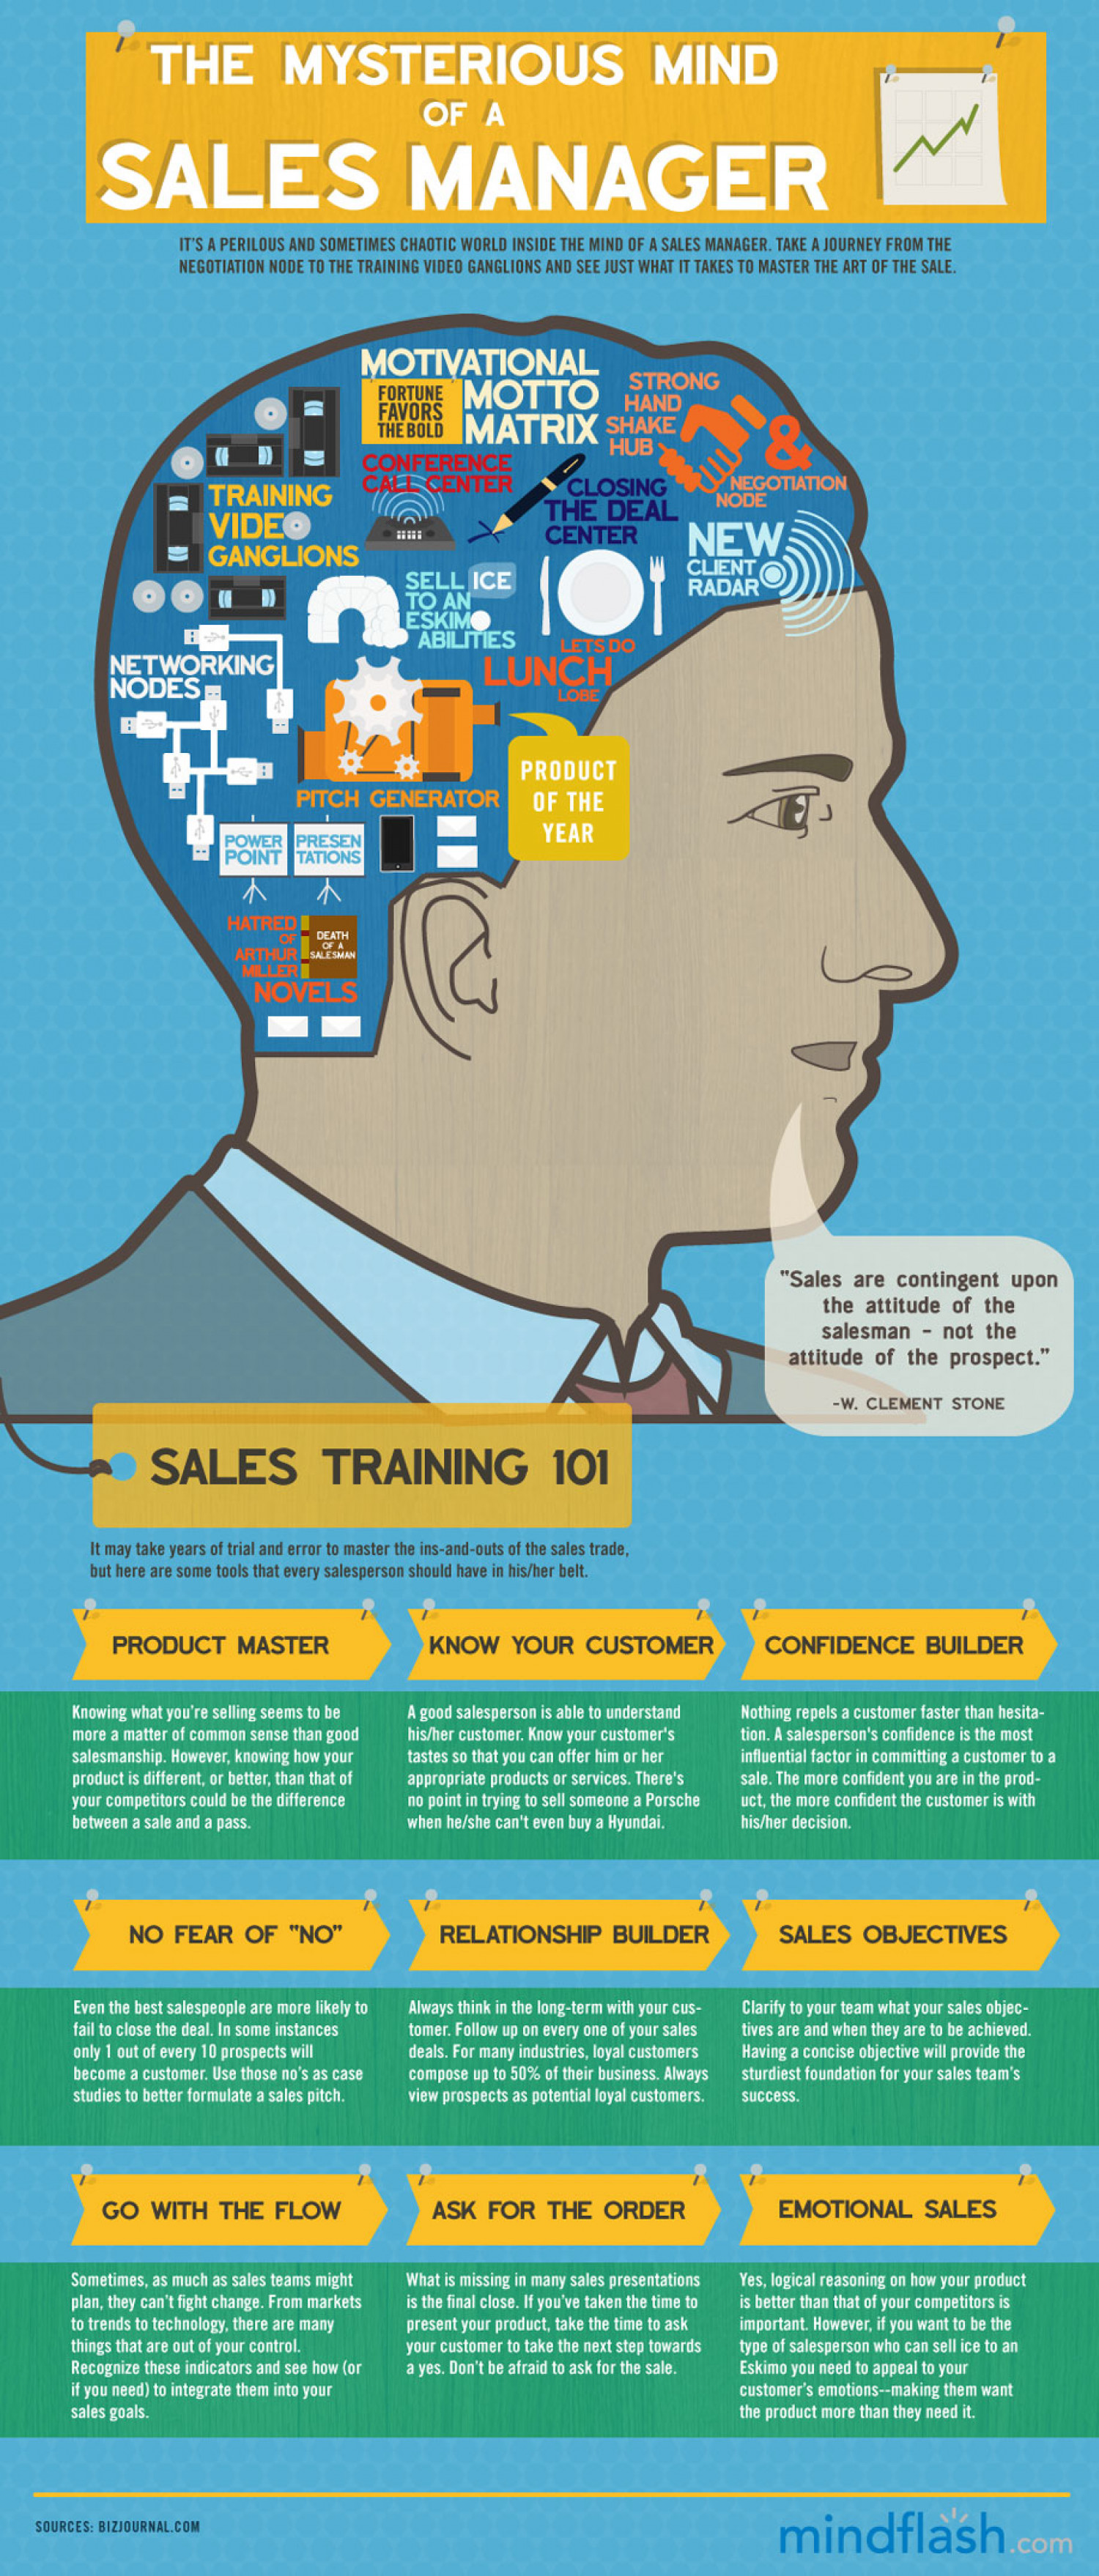 The Mysterious Mind of a Sales Manager Infographic